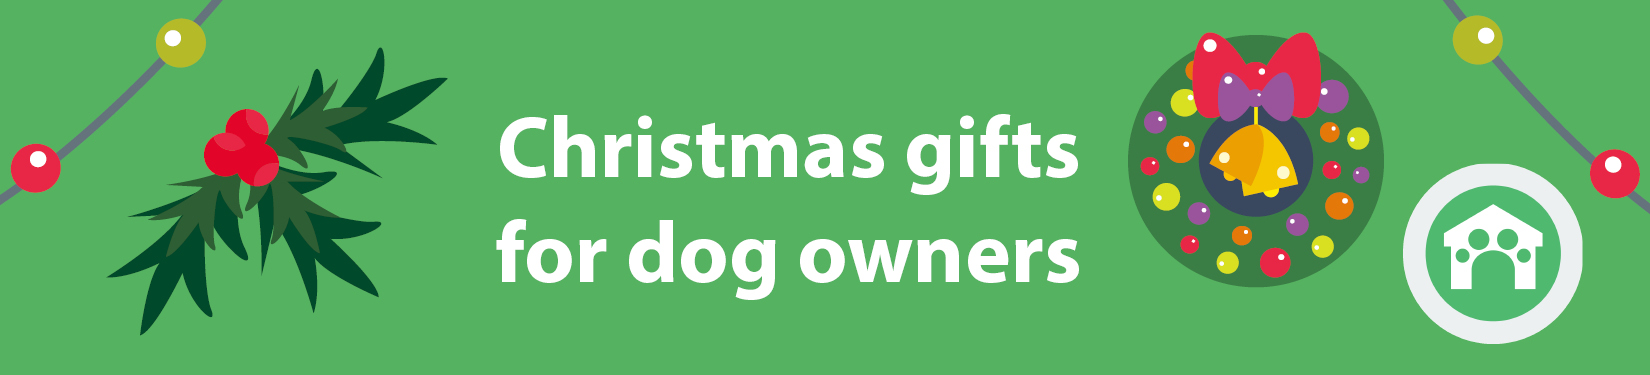 Christmas gifts for dog owners header image